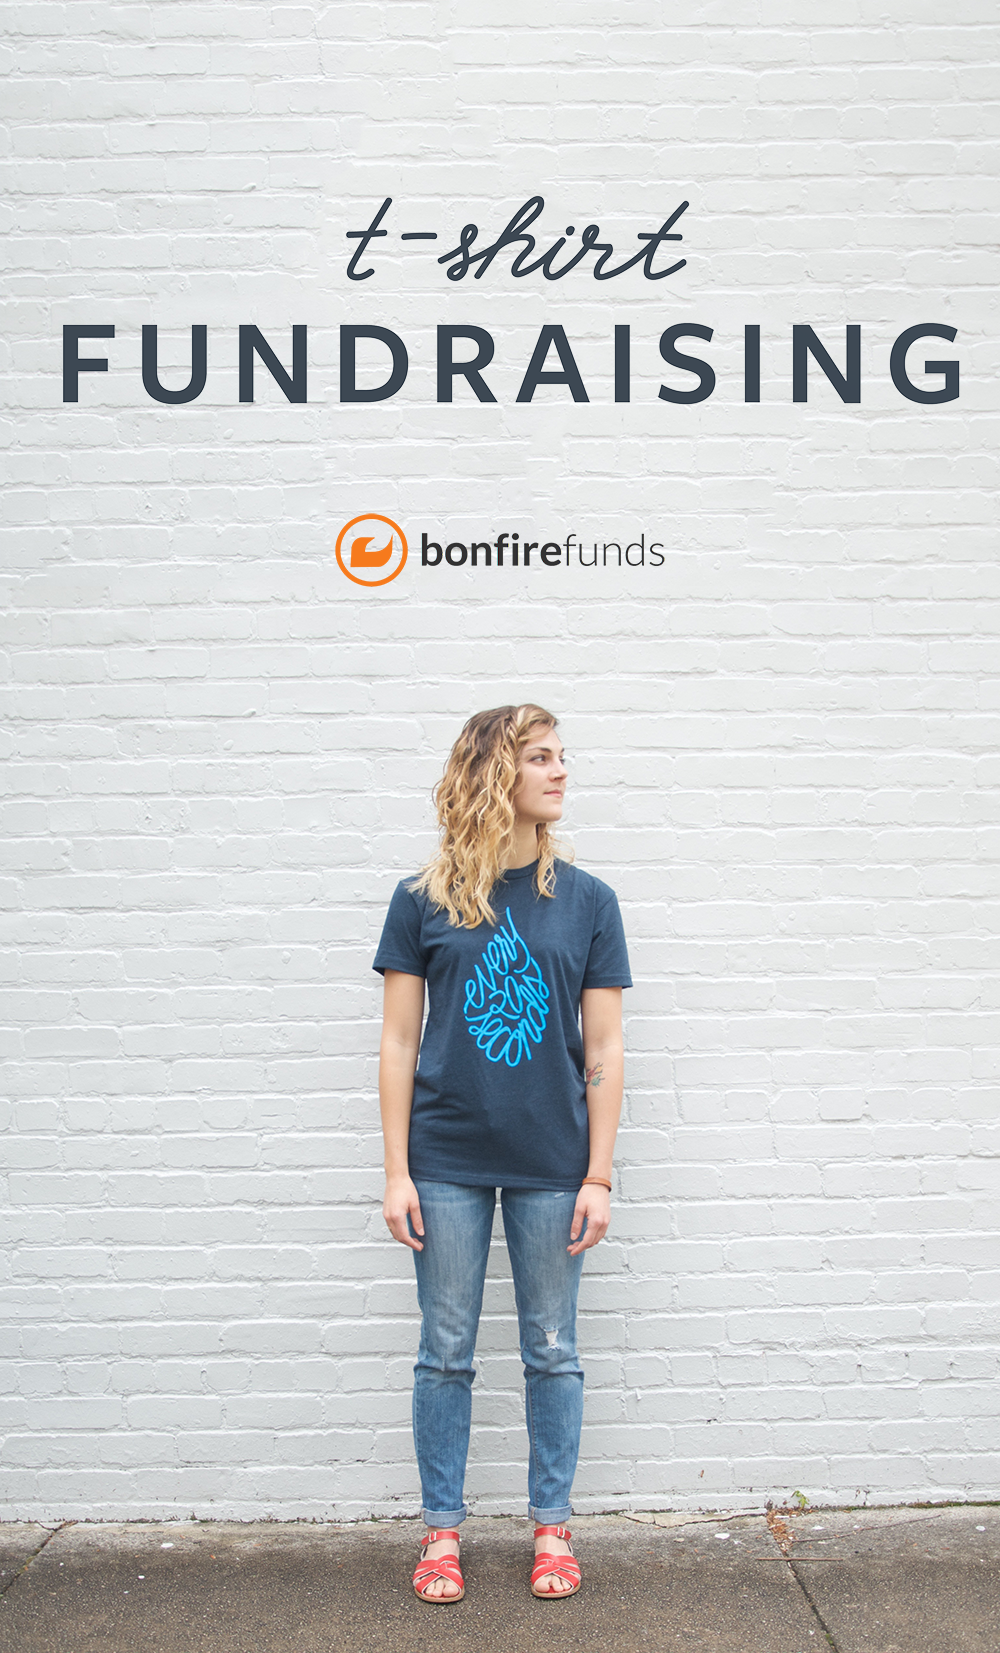 Raise money with custom tshirts. Create your own design